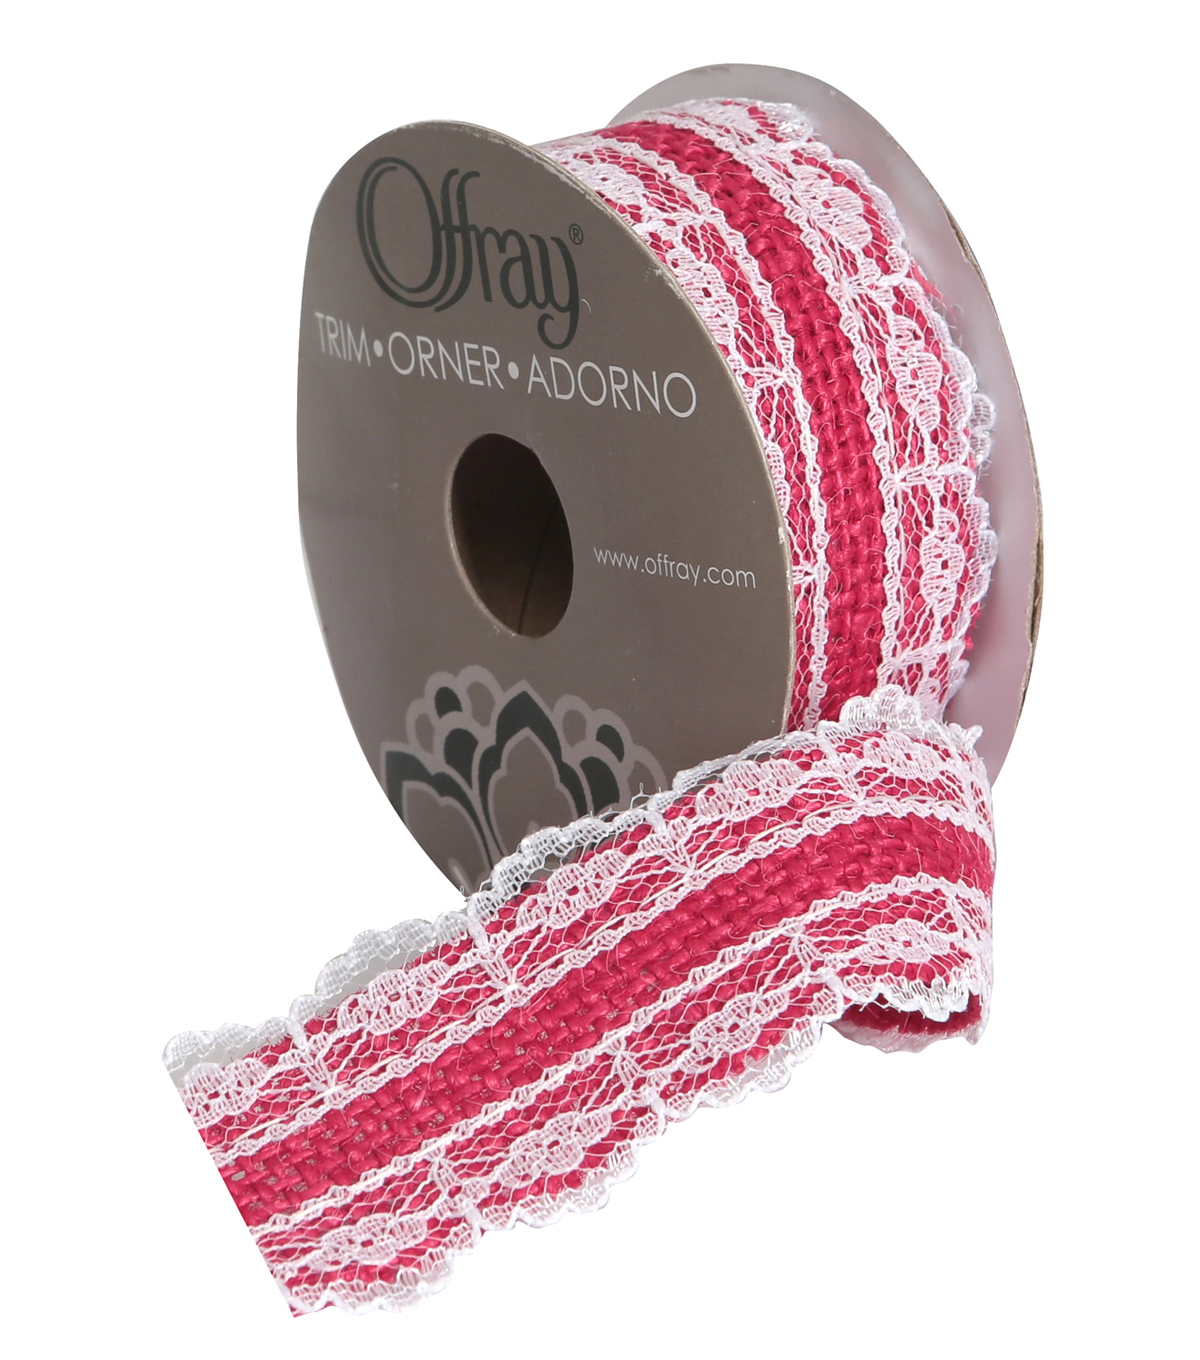 Burlap W Lace 1 And Half In Pink Adhs R Ribbon | JOANN